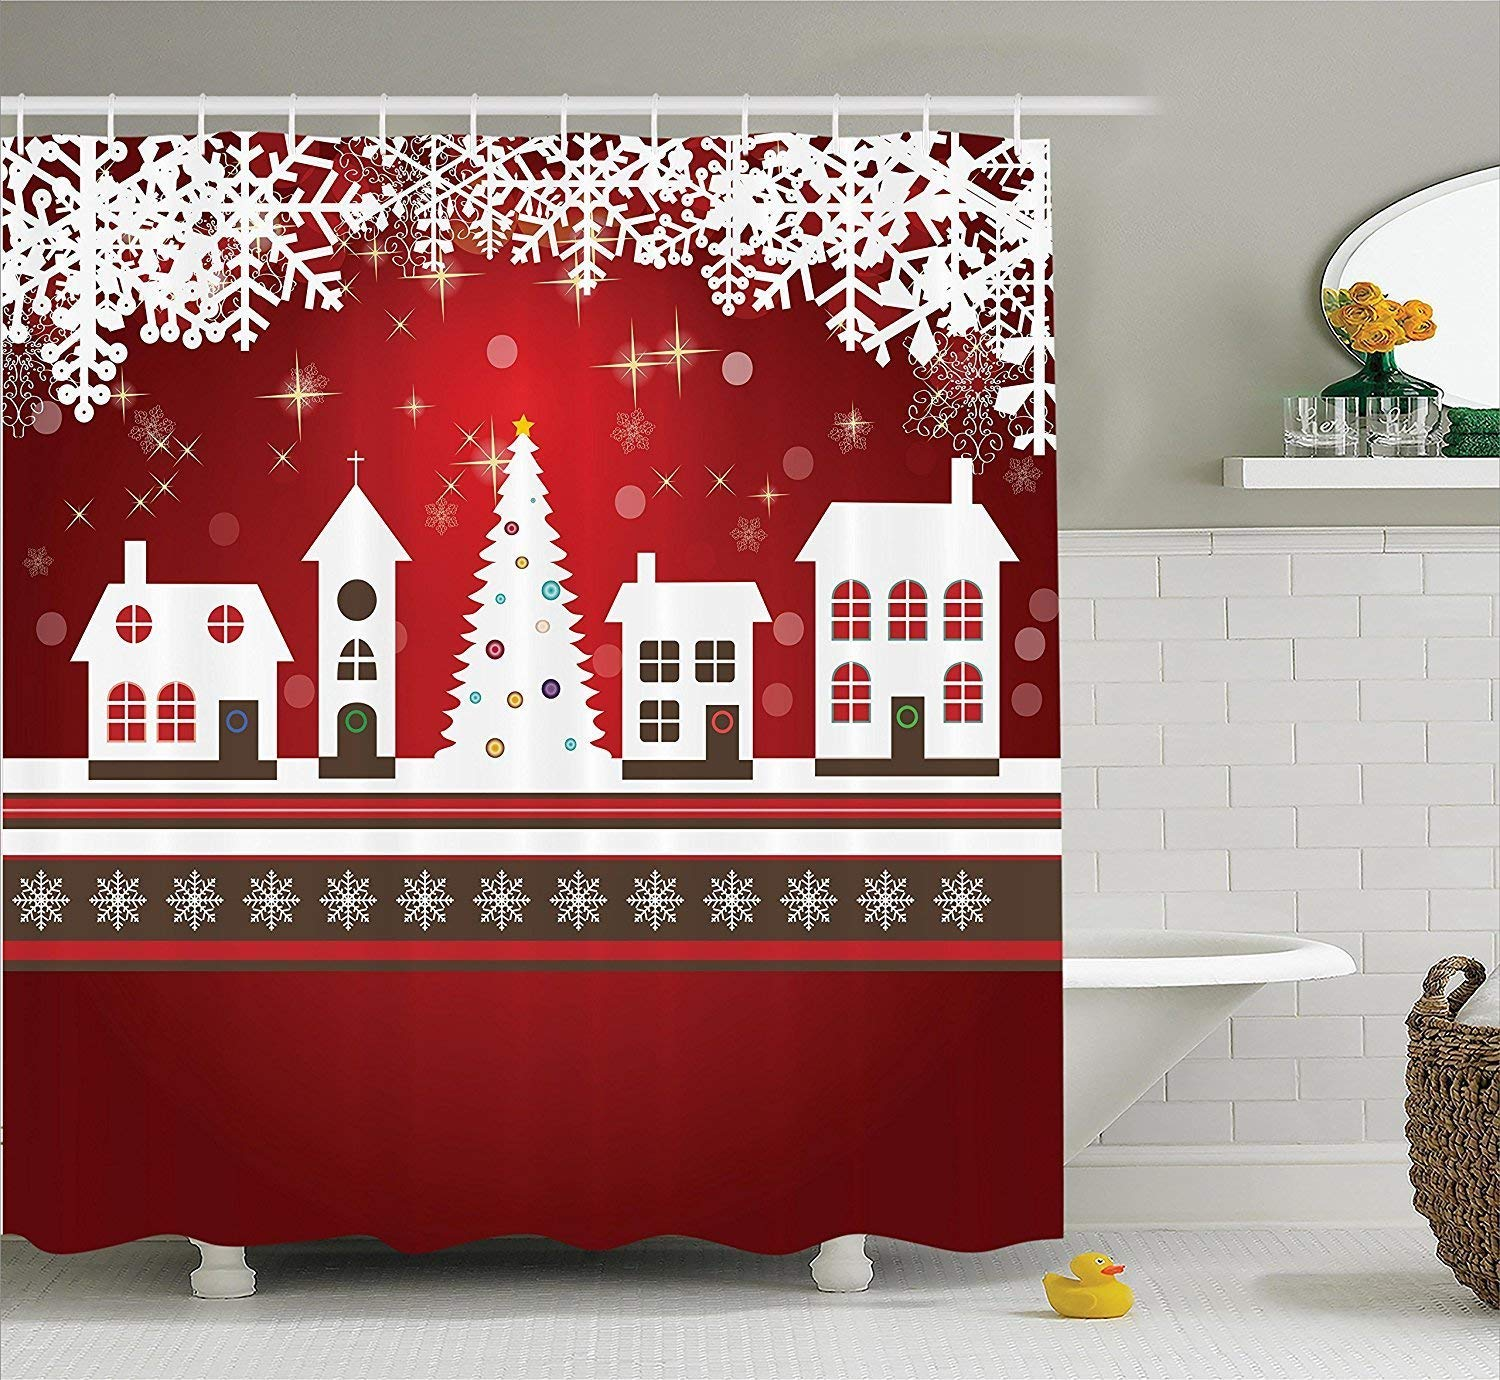 Diversión sexy werert werert sexy Christmas Shower Curtain, Winter Holidays Theme Gingerbread House with Trees and Snowflakes Artwork Print, Fabric Bathroom Decor Set with Hooks,Red White 72 X 72 118c47